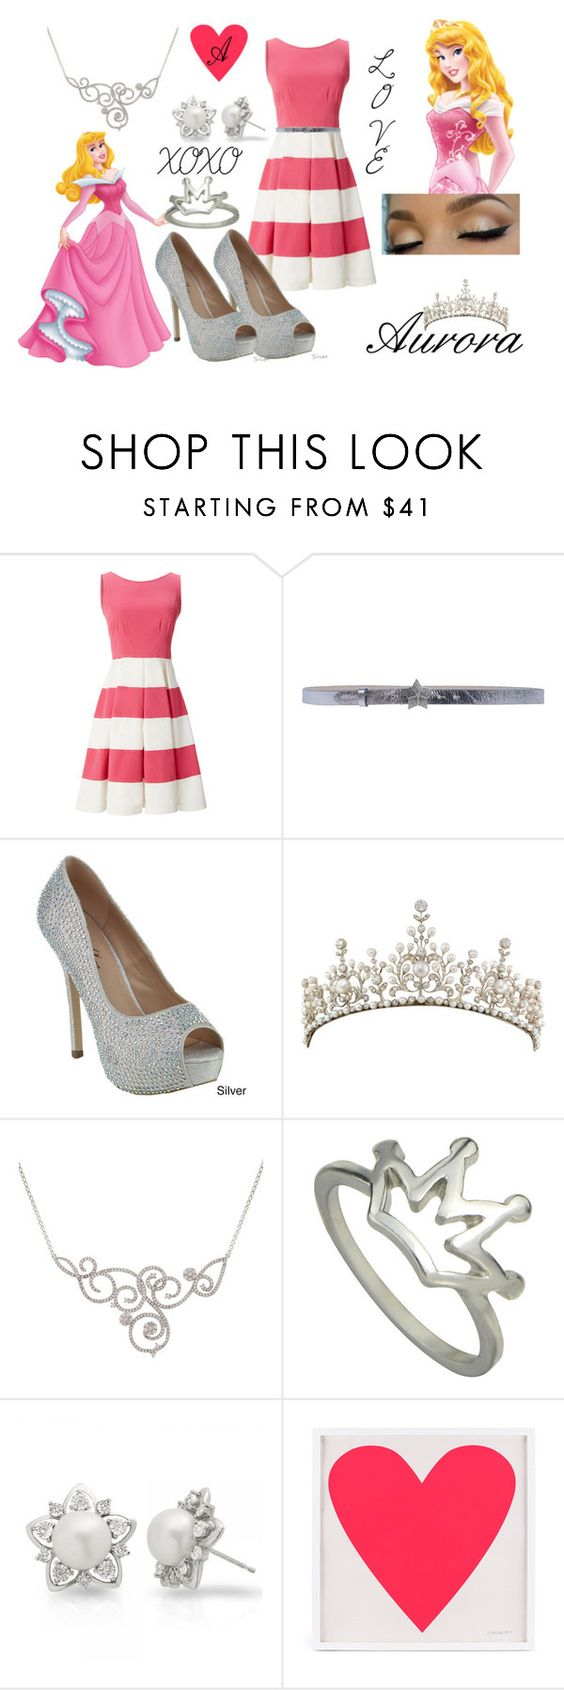 """""""Aurora For Valentine's Day!"""" by wonderlandcreations ❤ liked on Polyvore featuring Kate Spade, Just Cavalli, Disney, Allurez, women's clothing, women's fashion, women, female, woman and misses"""